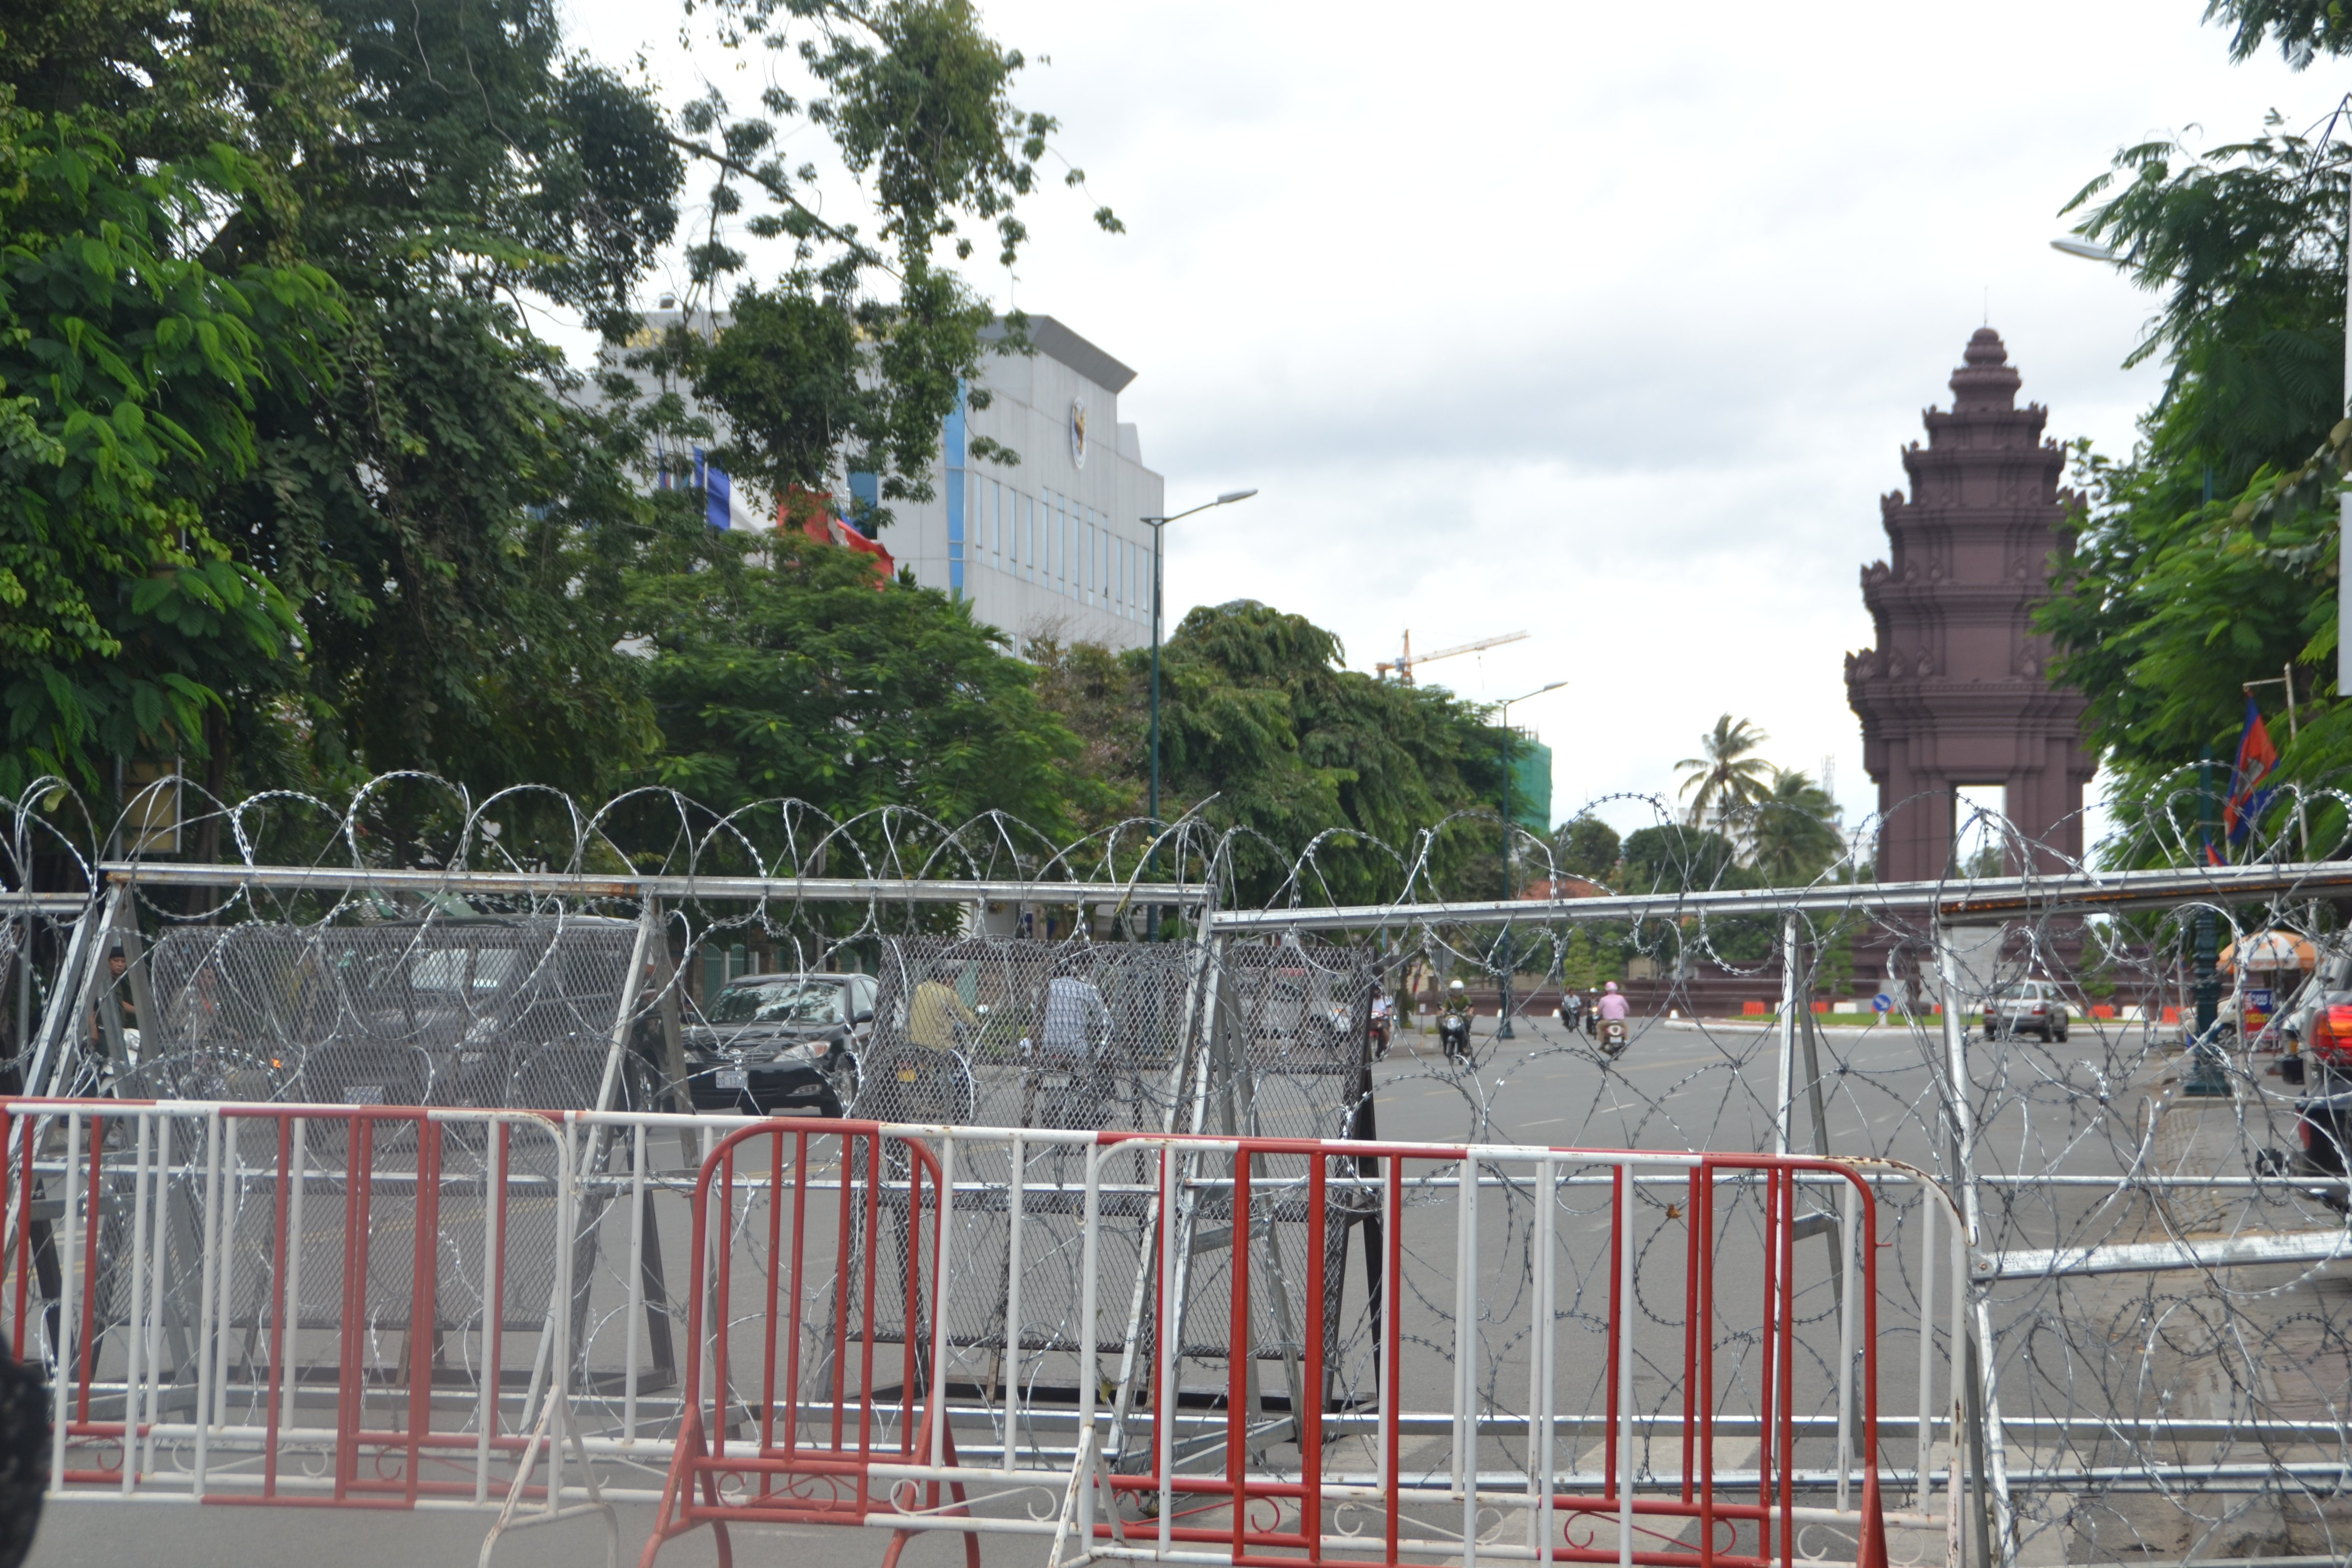 Main roads nearby the National Assembly were blocked in Phnom Penh on 23 September 2013 when the Cambodia's King Norodom Sihamoni convened the first post-election sitting of parliament. Photo by the author, Sopheap Chak (CC BY-ND 2.0).